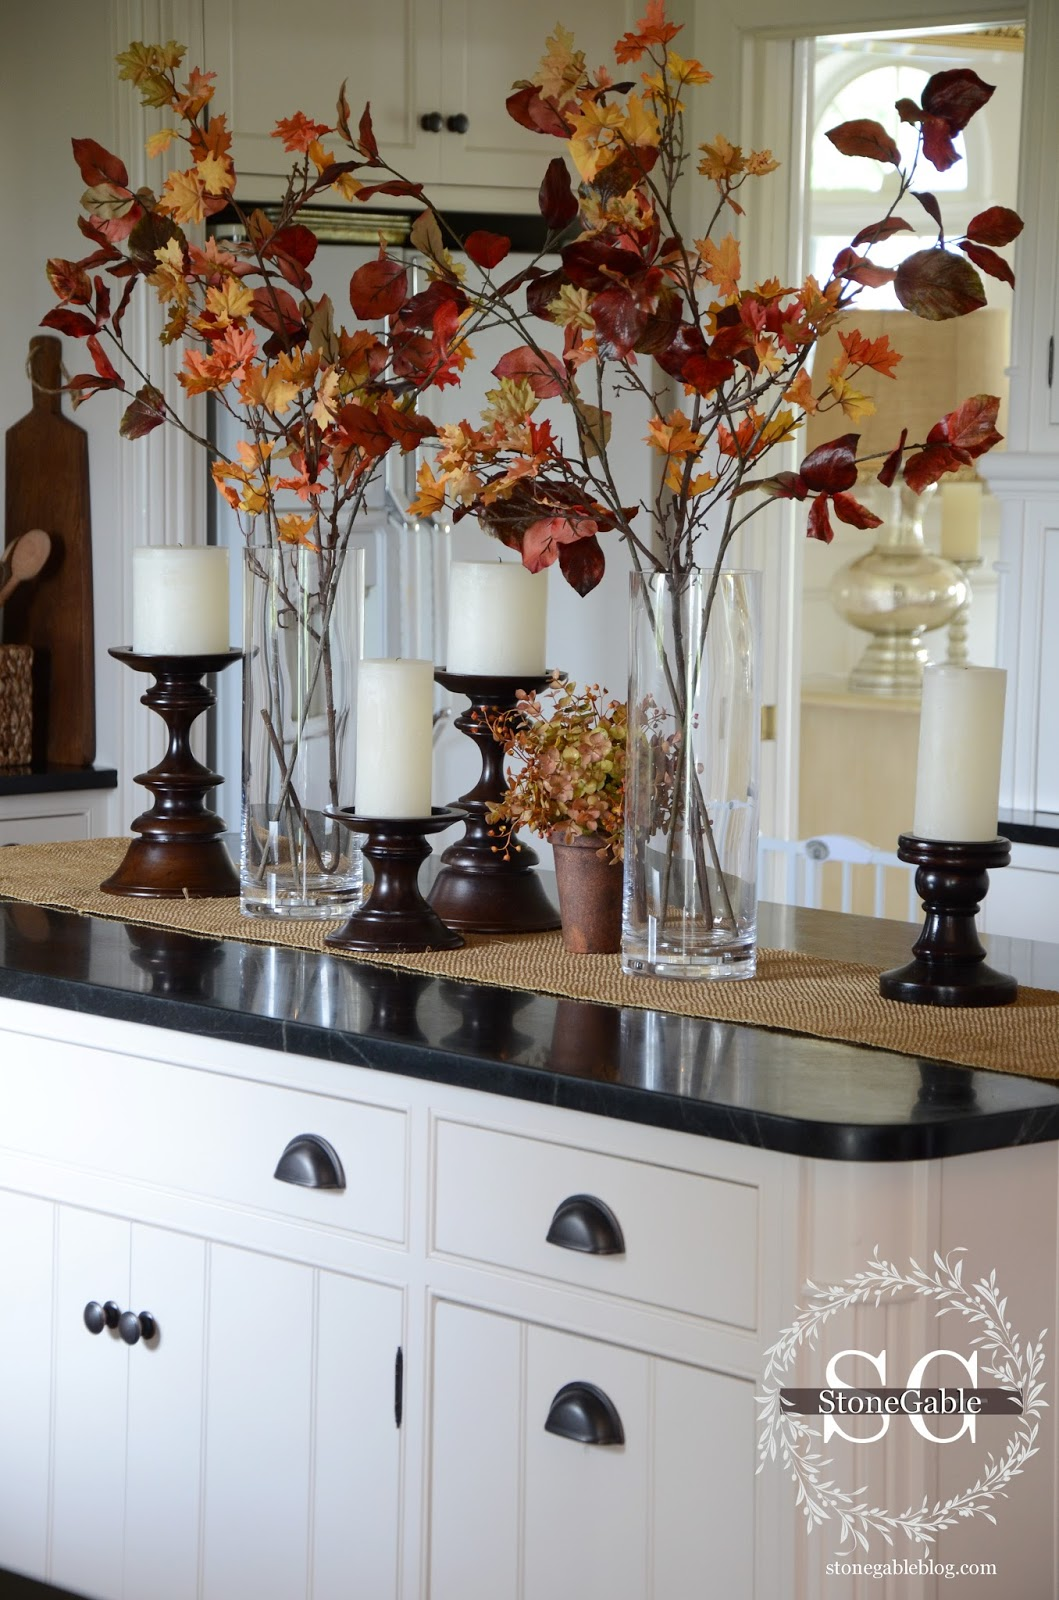 Best All About The Details Kitchen Home Tour Stonegable This Month